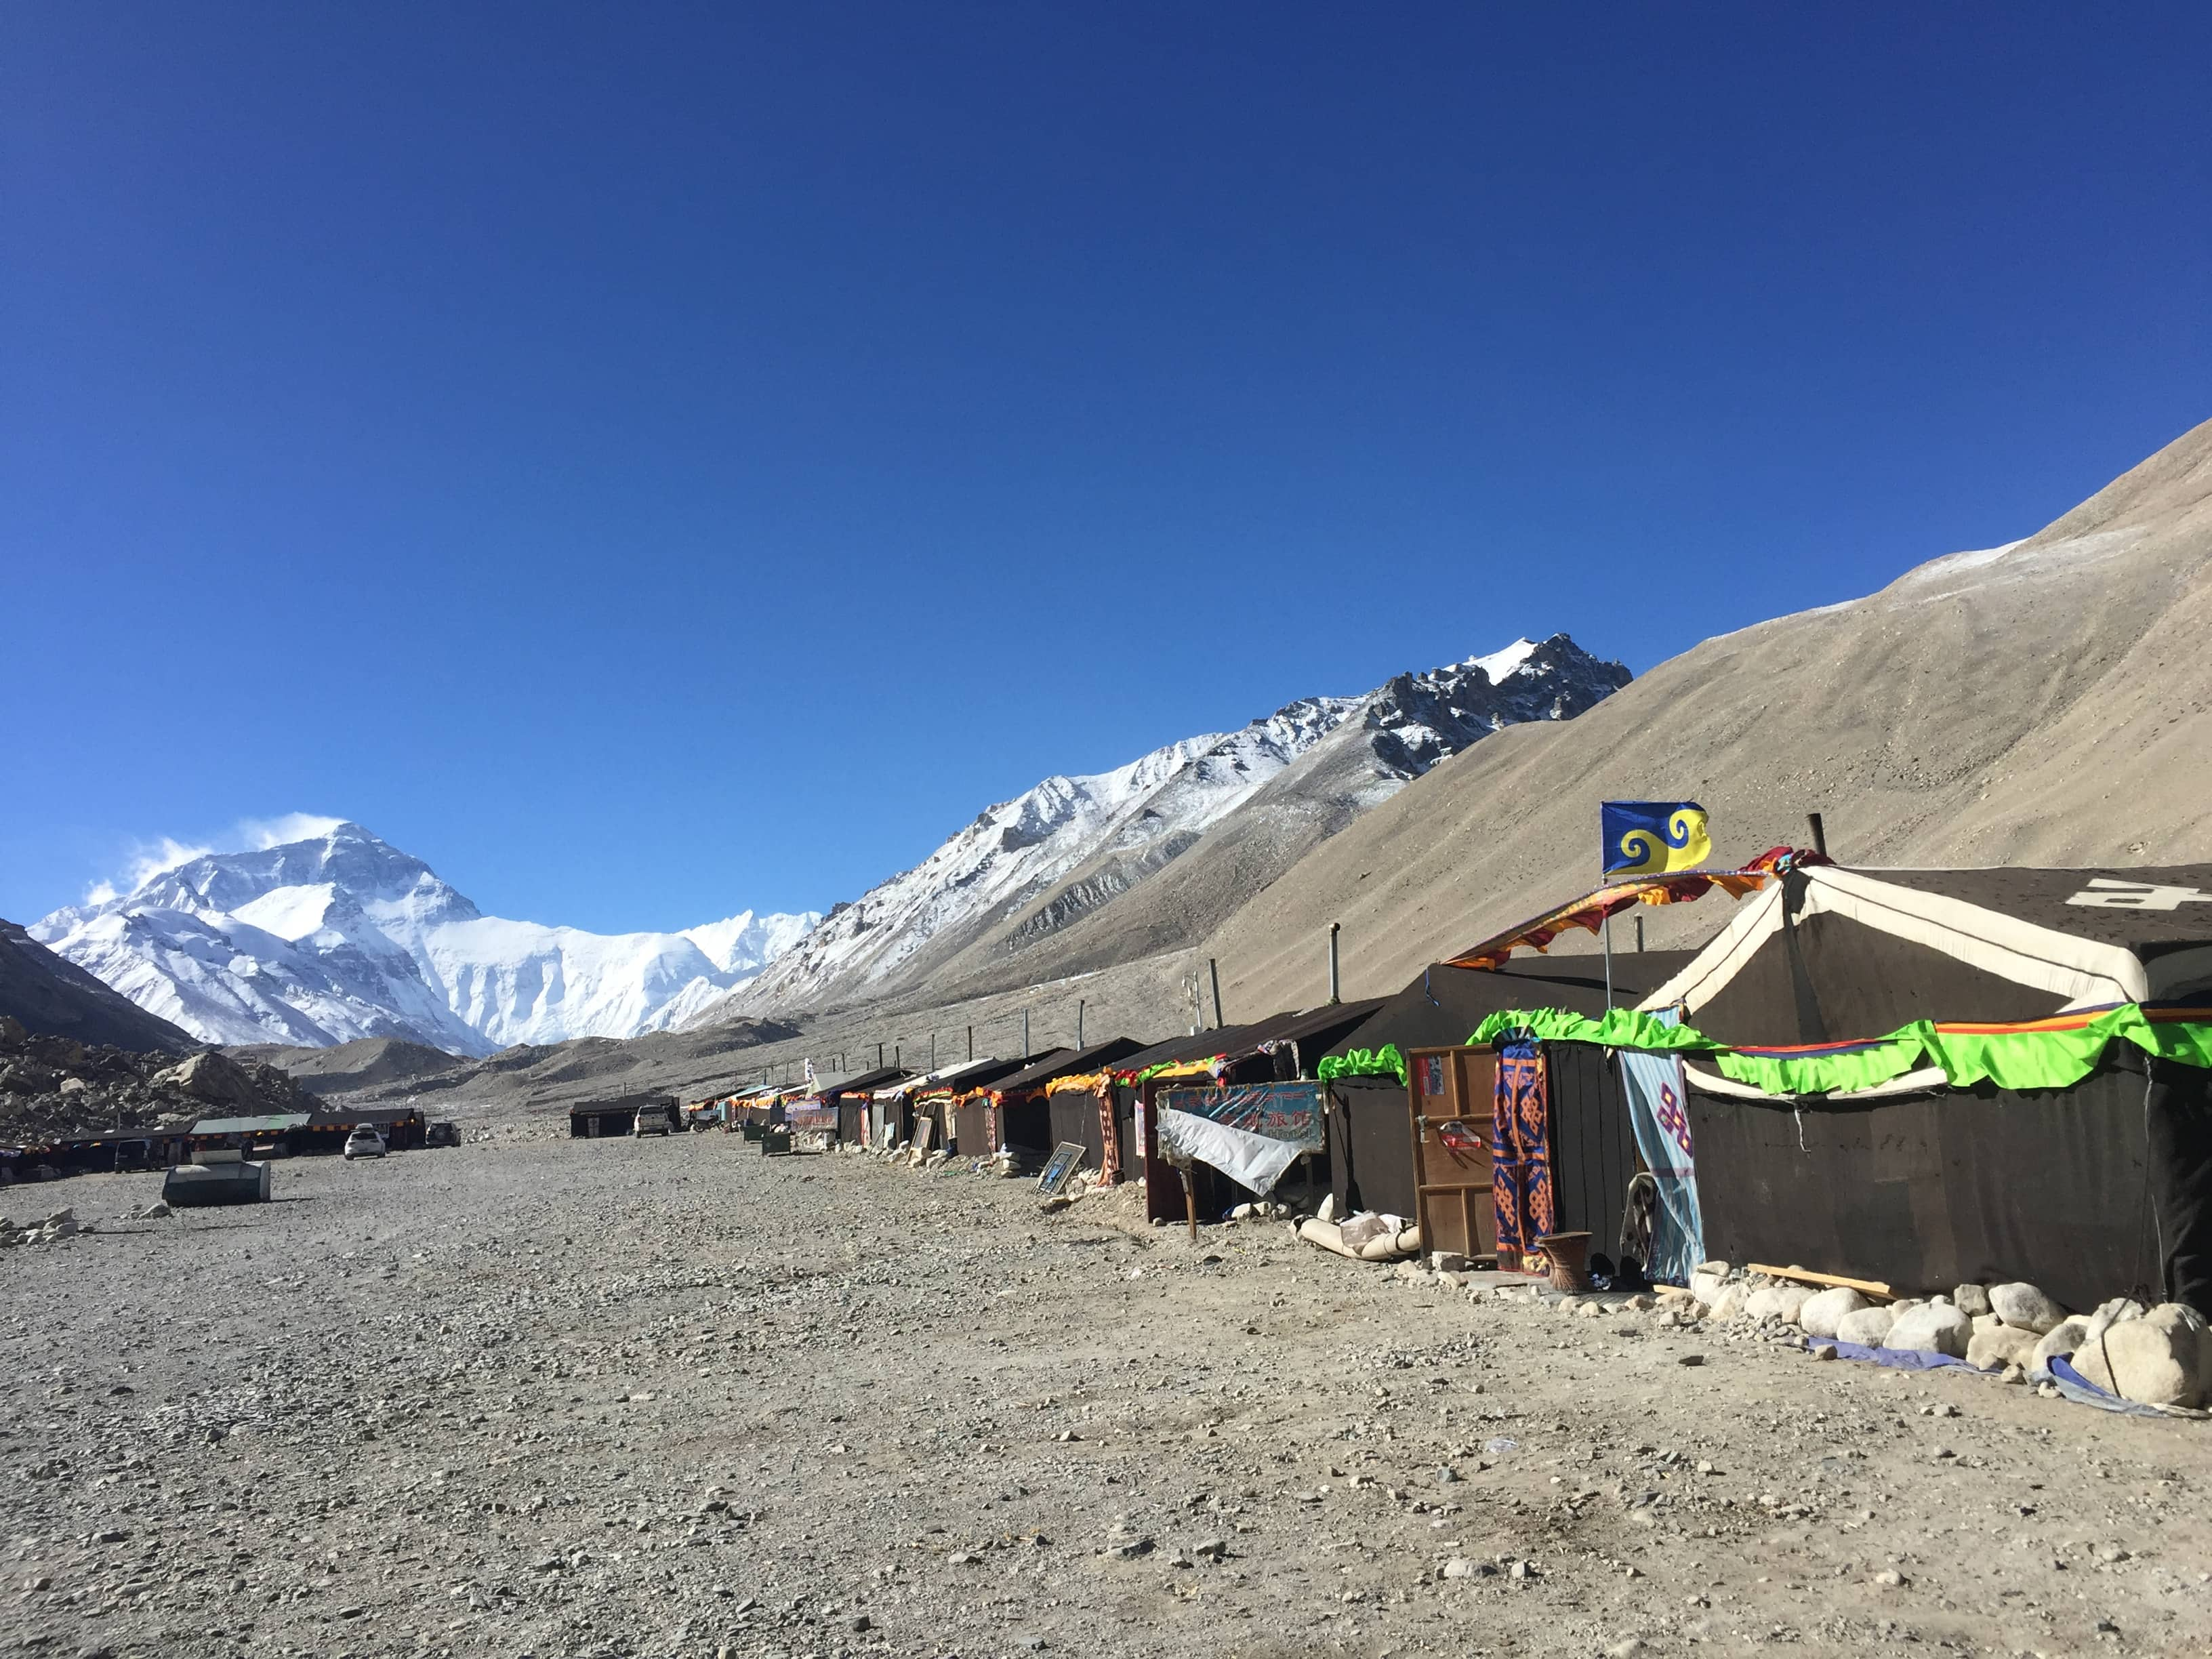 Tents in the Everest Base Camp